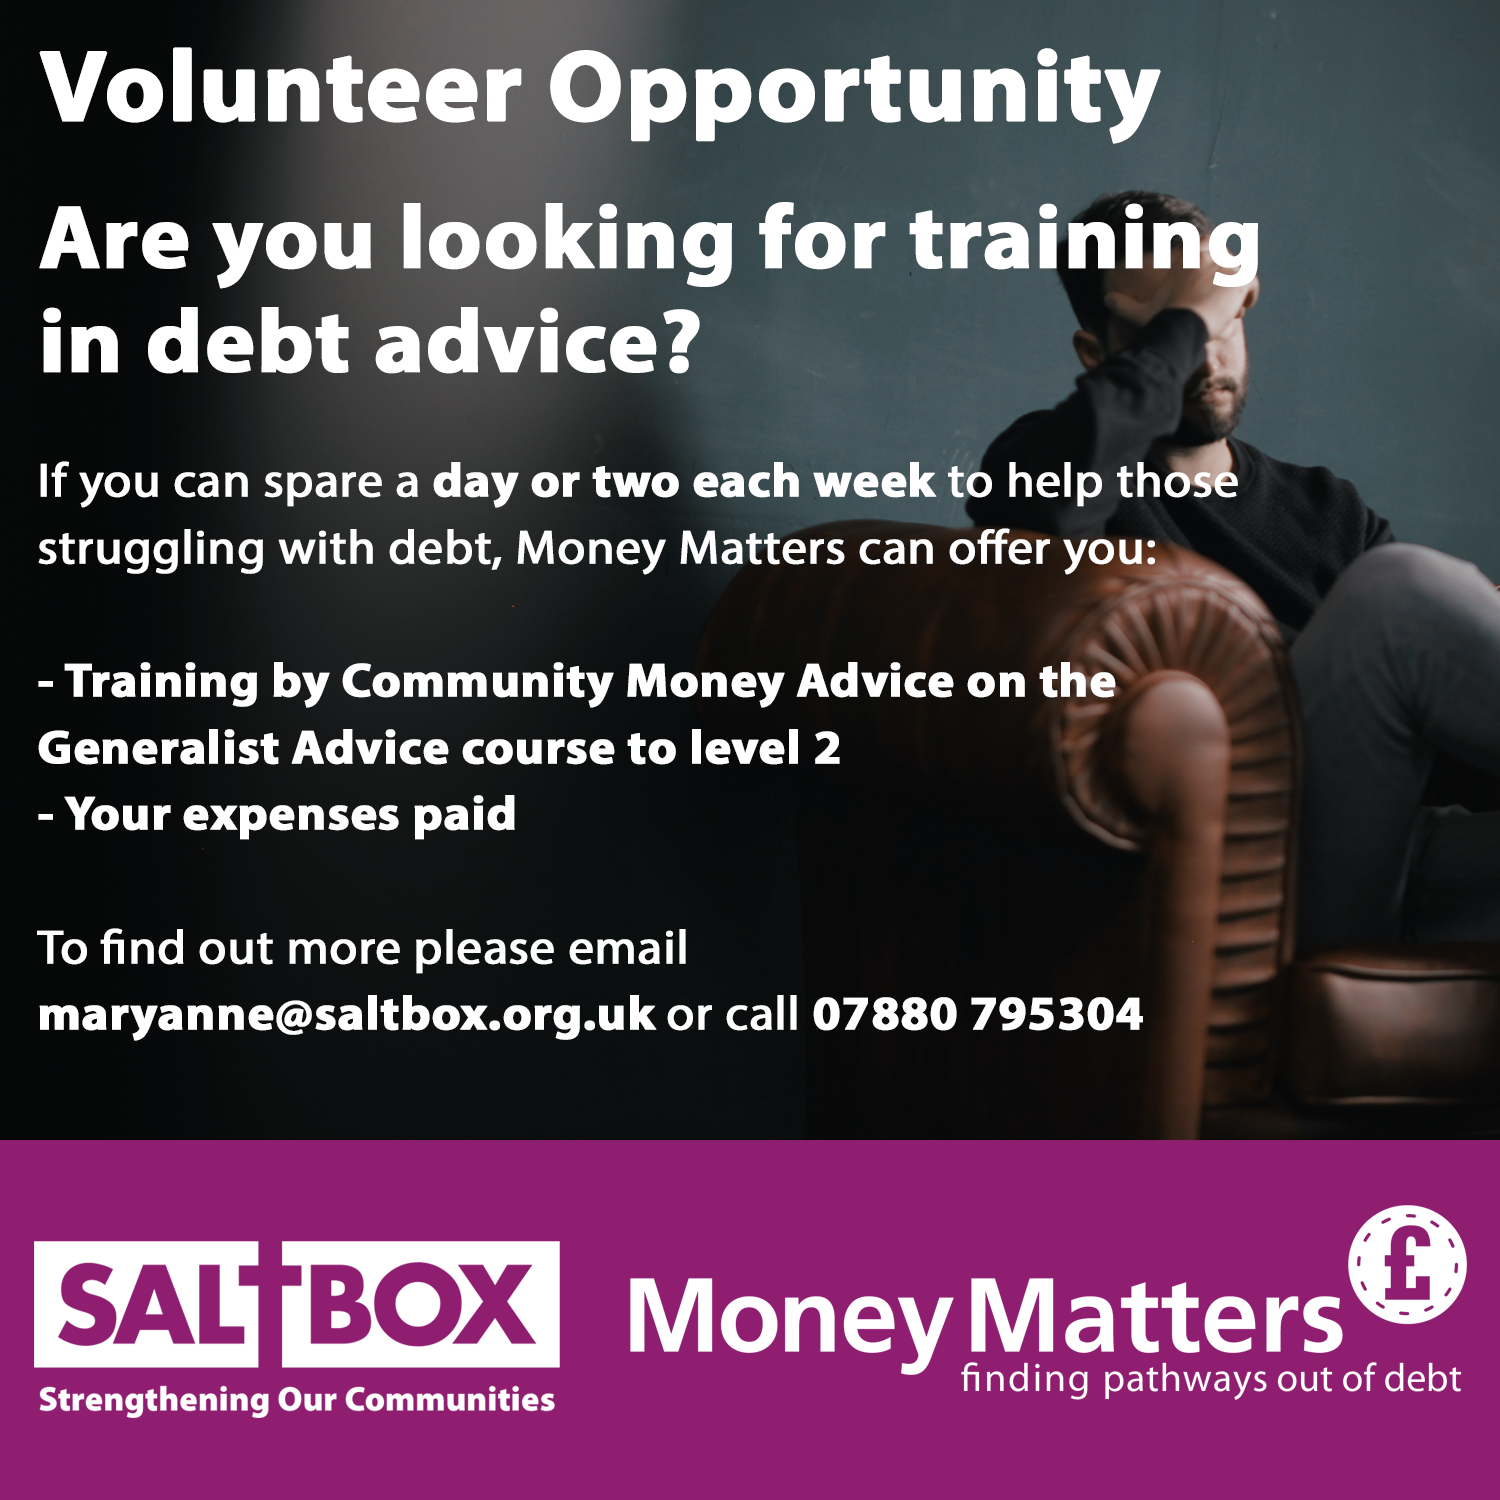 JOIN THE TEAM - Money Matters